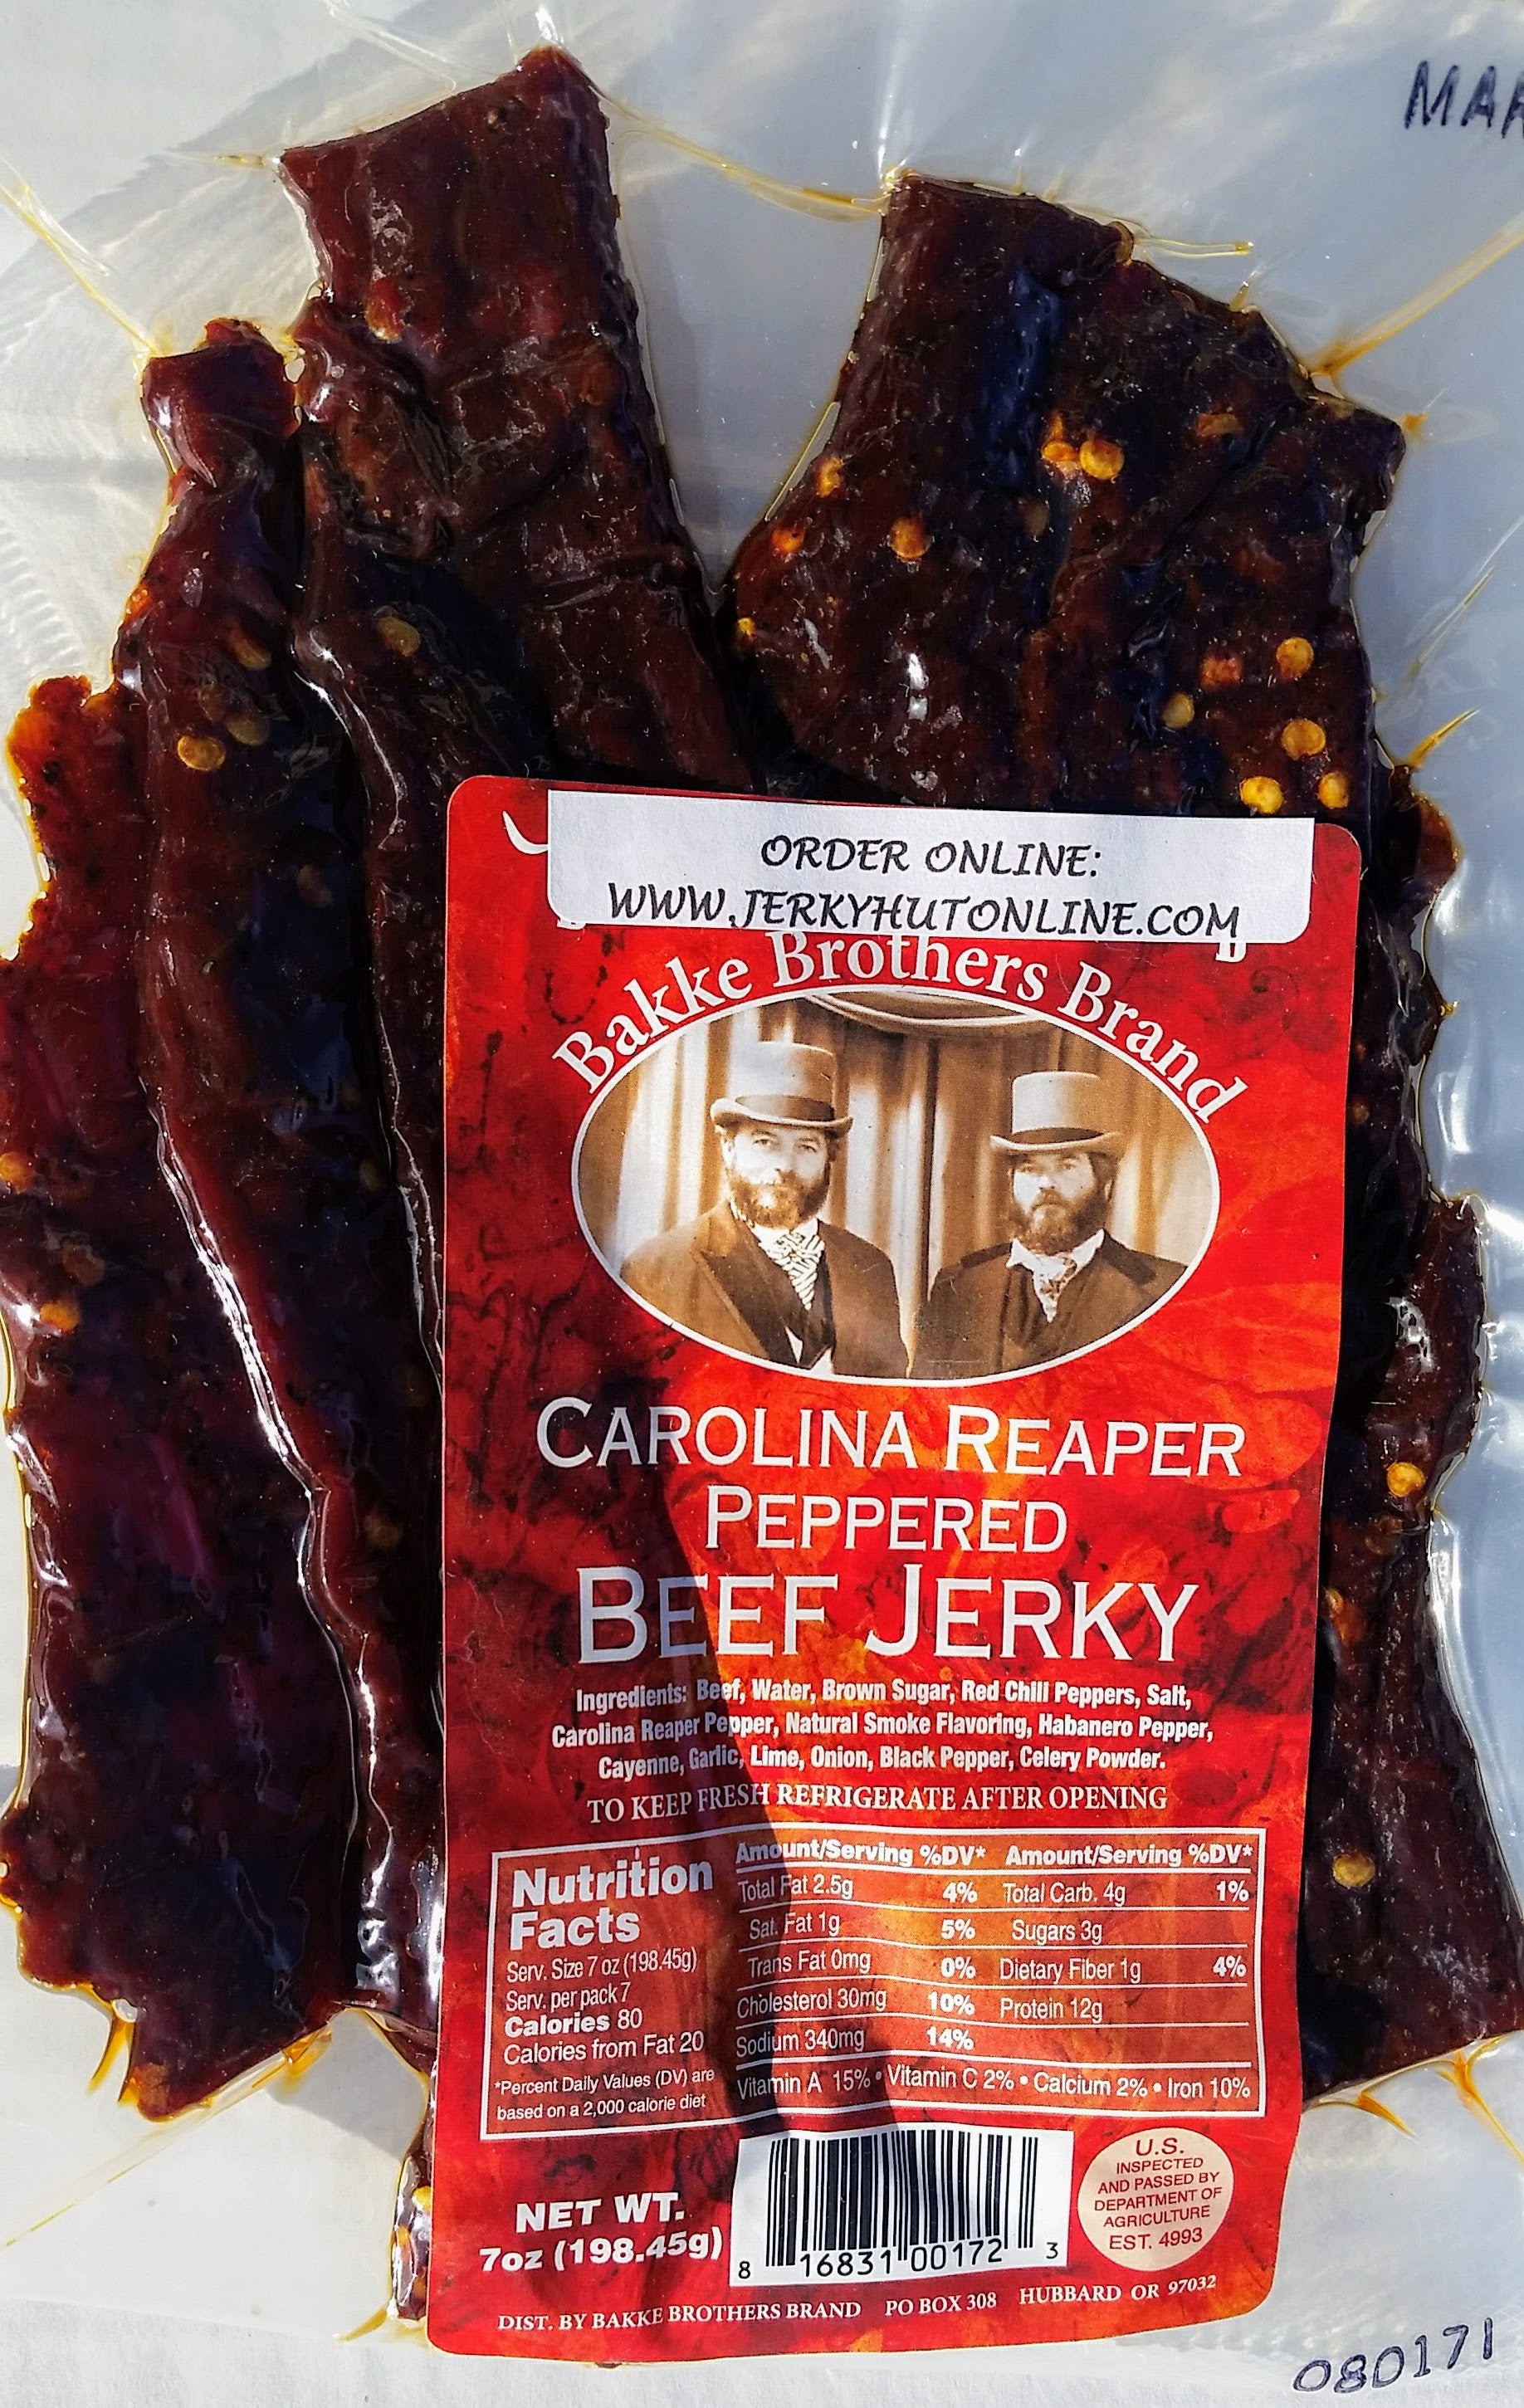 Carolina Reaper, Beef jerky, World's Hottest Pepper - The Jerky Hut online